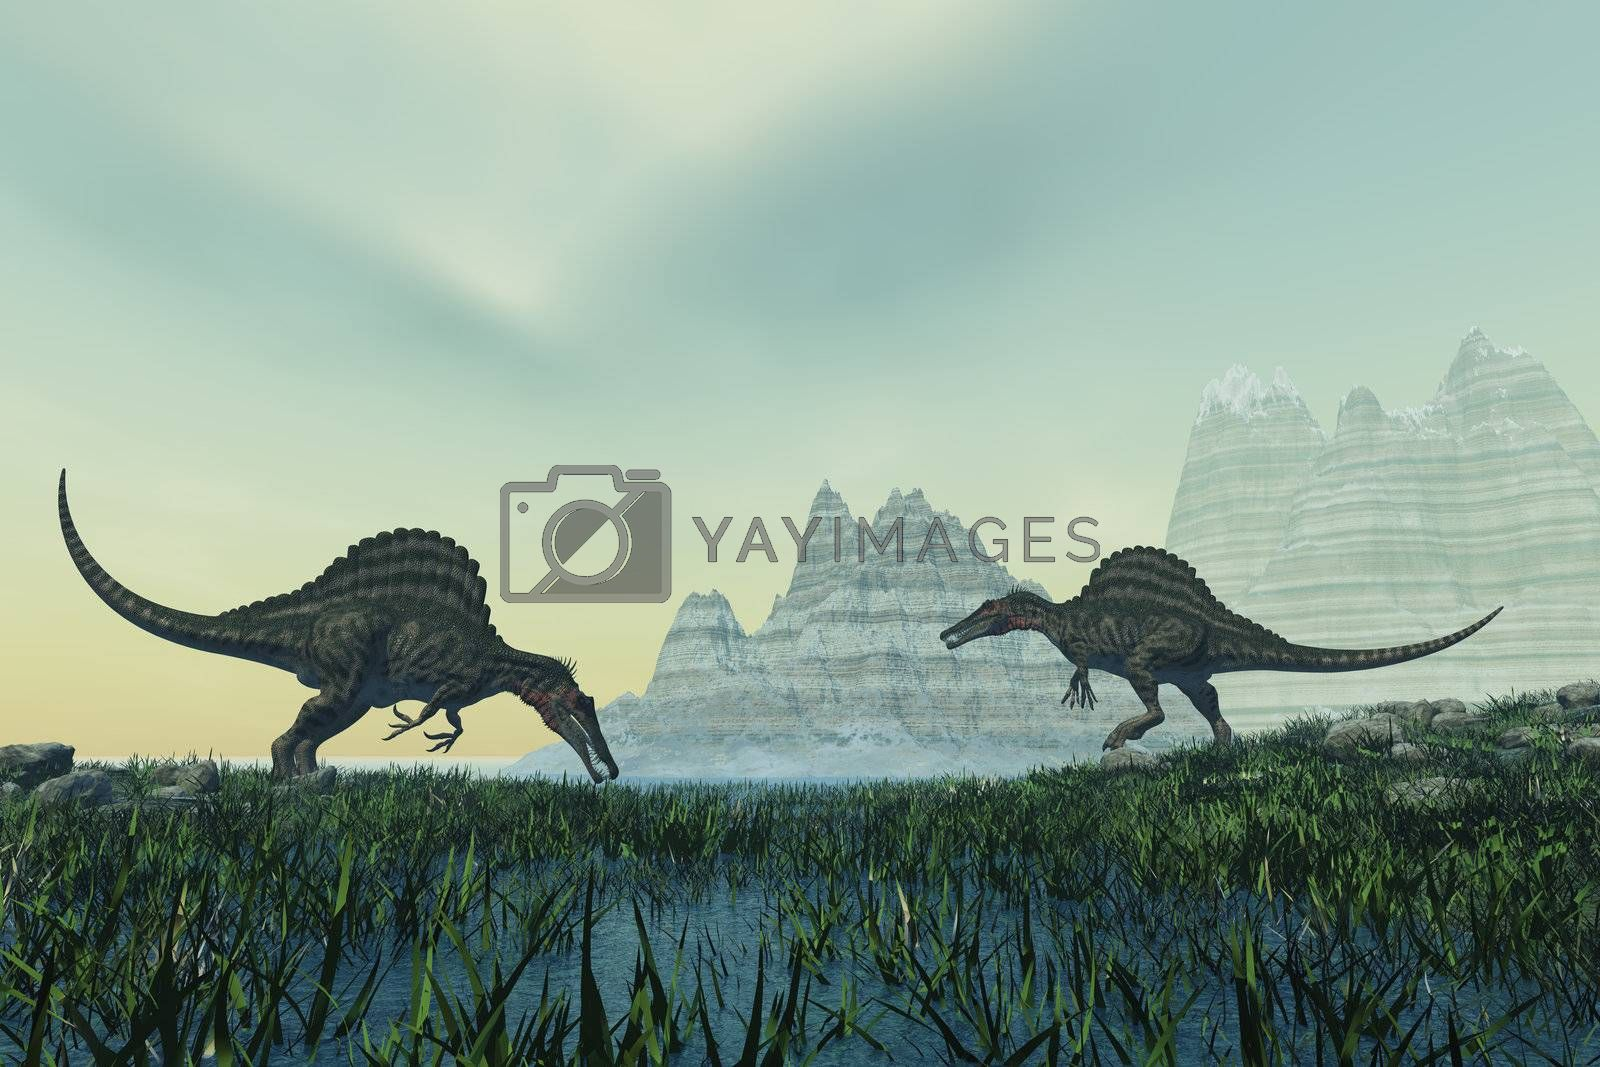 Two Spinosaurus dinosaurs drink from a marsh area in prehistoric times.